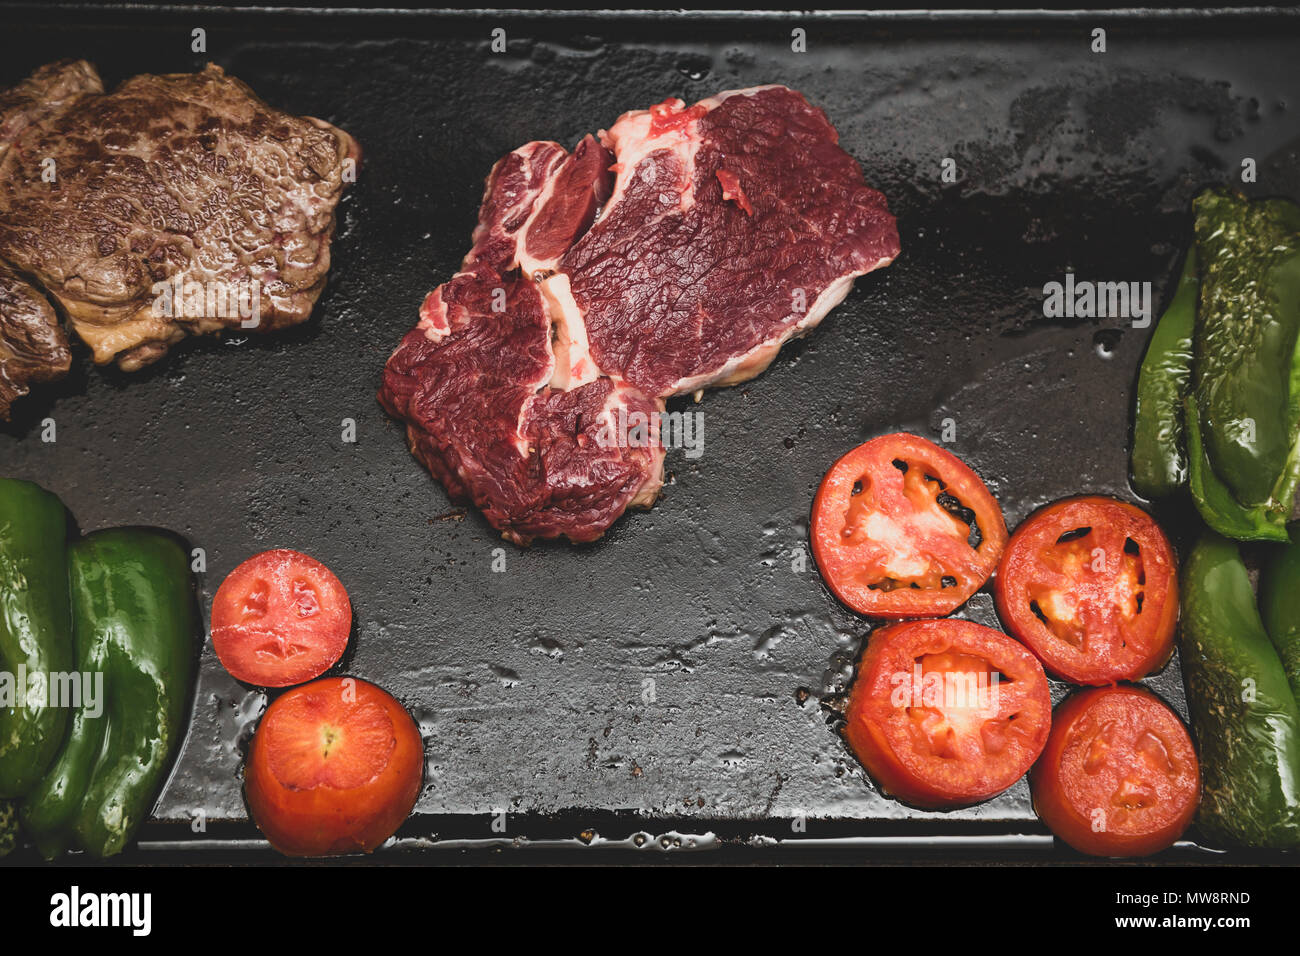 Rib eye steak (Spanish: Bife ancho) raw and grilled, tomatoes and green peppers on a cast iron rectangle griddle plate, vintage toned, flat lay - Stock Image